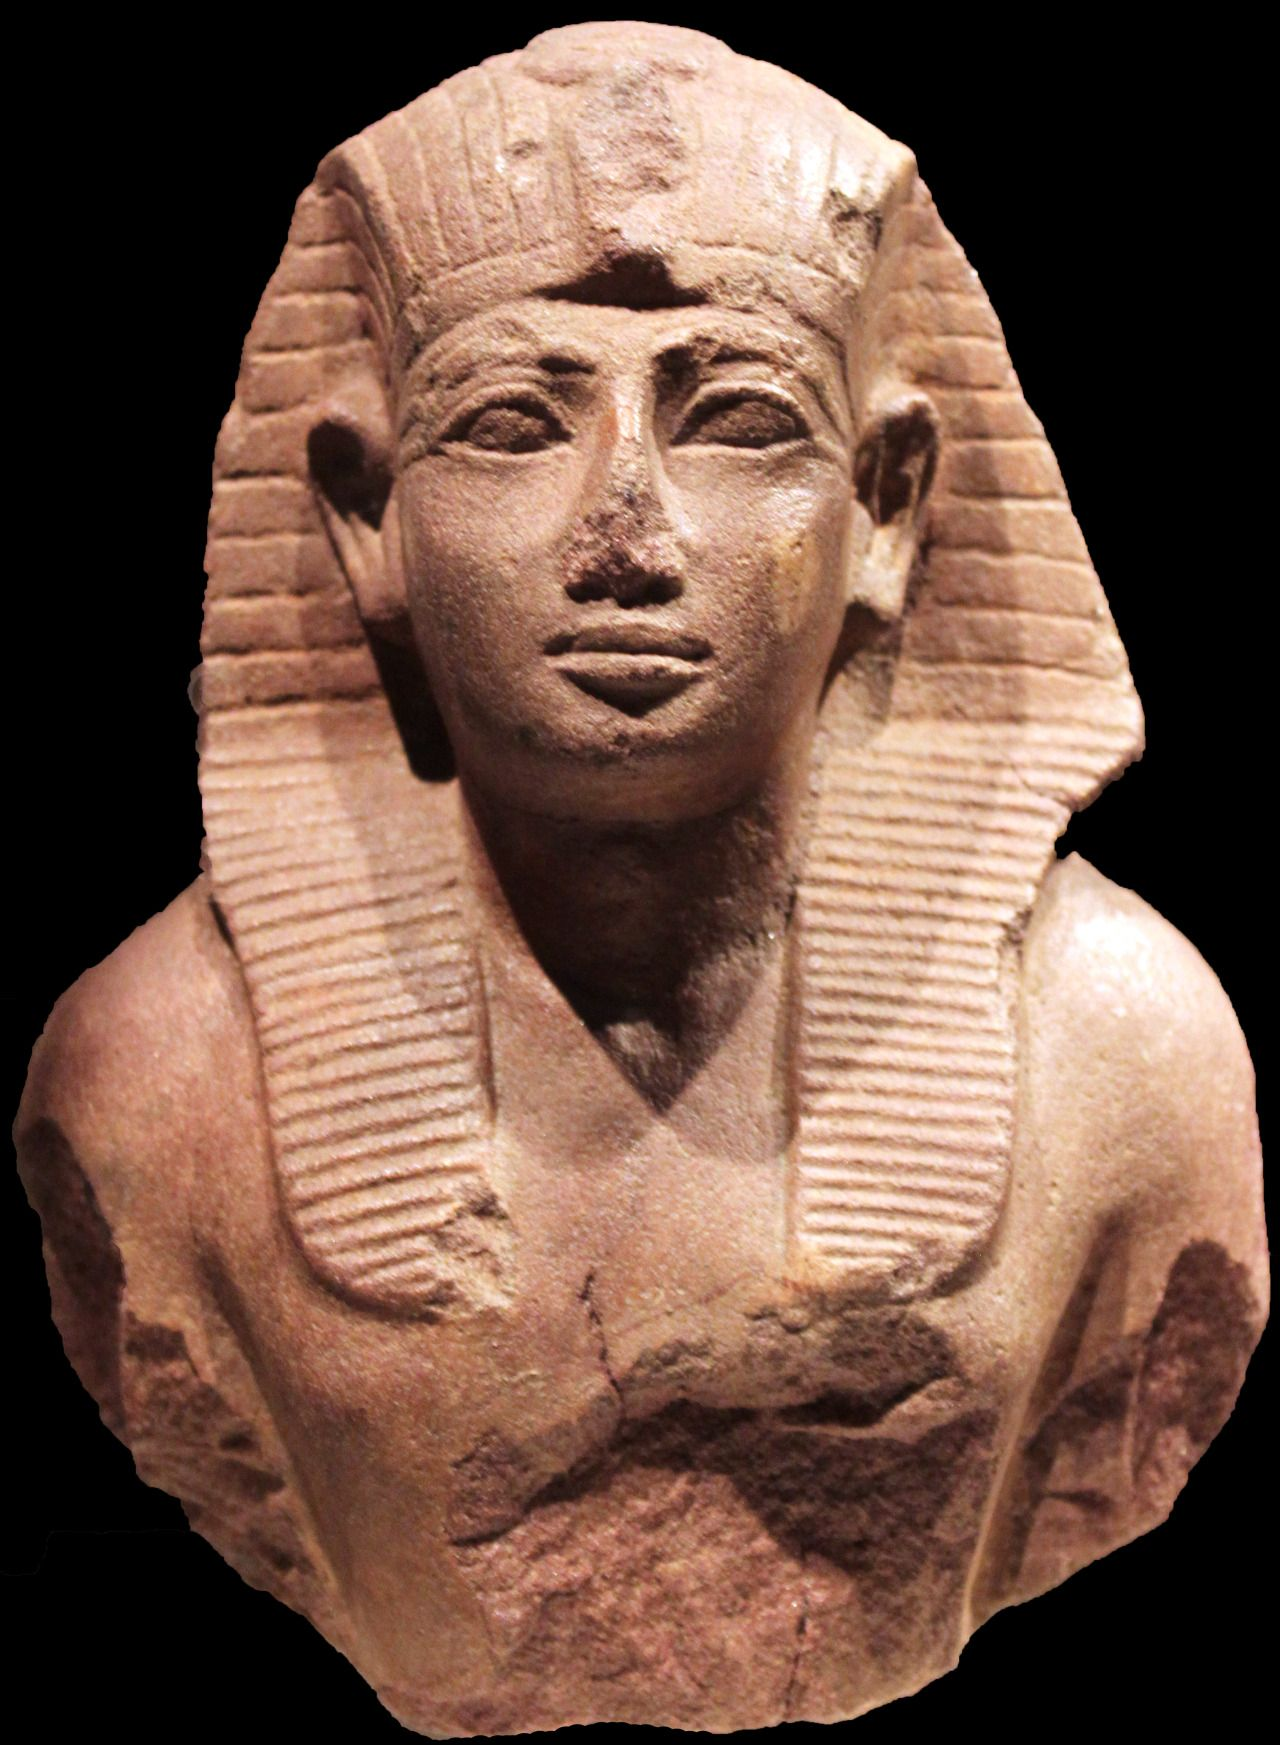 Upper part of a statue of the king Amenotep II, Ancient Egyptian, 18th Dynasty (ca. 1425 BC).